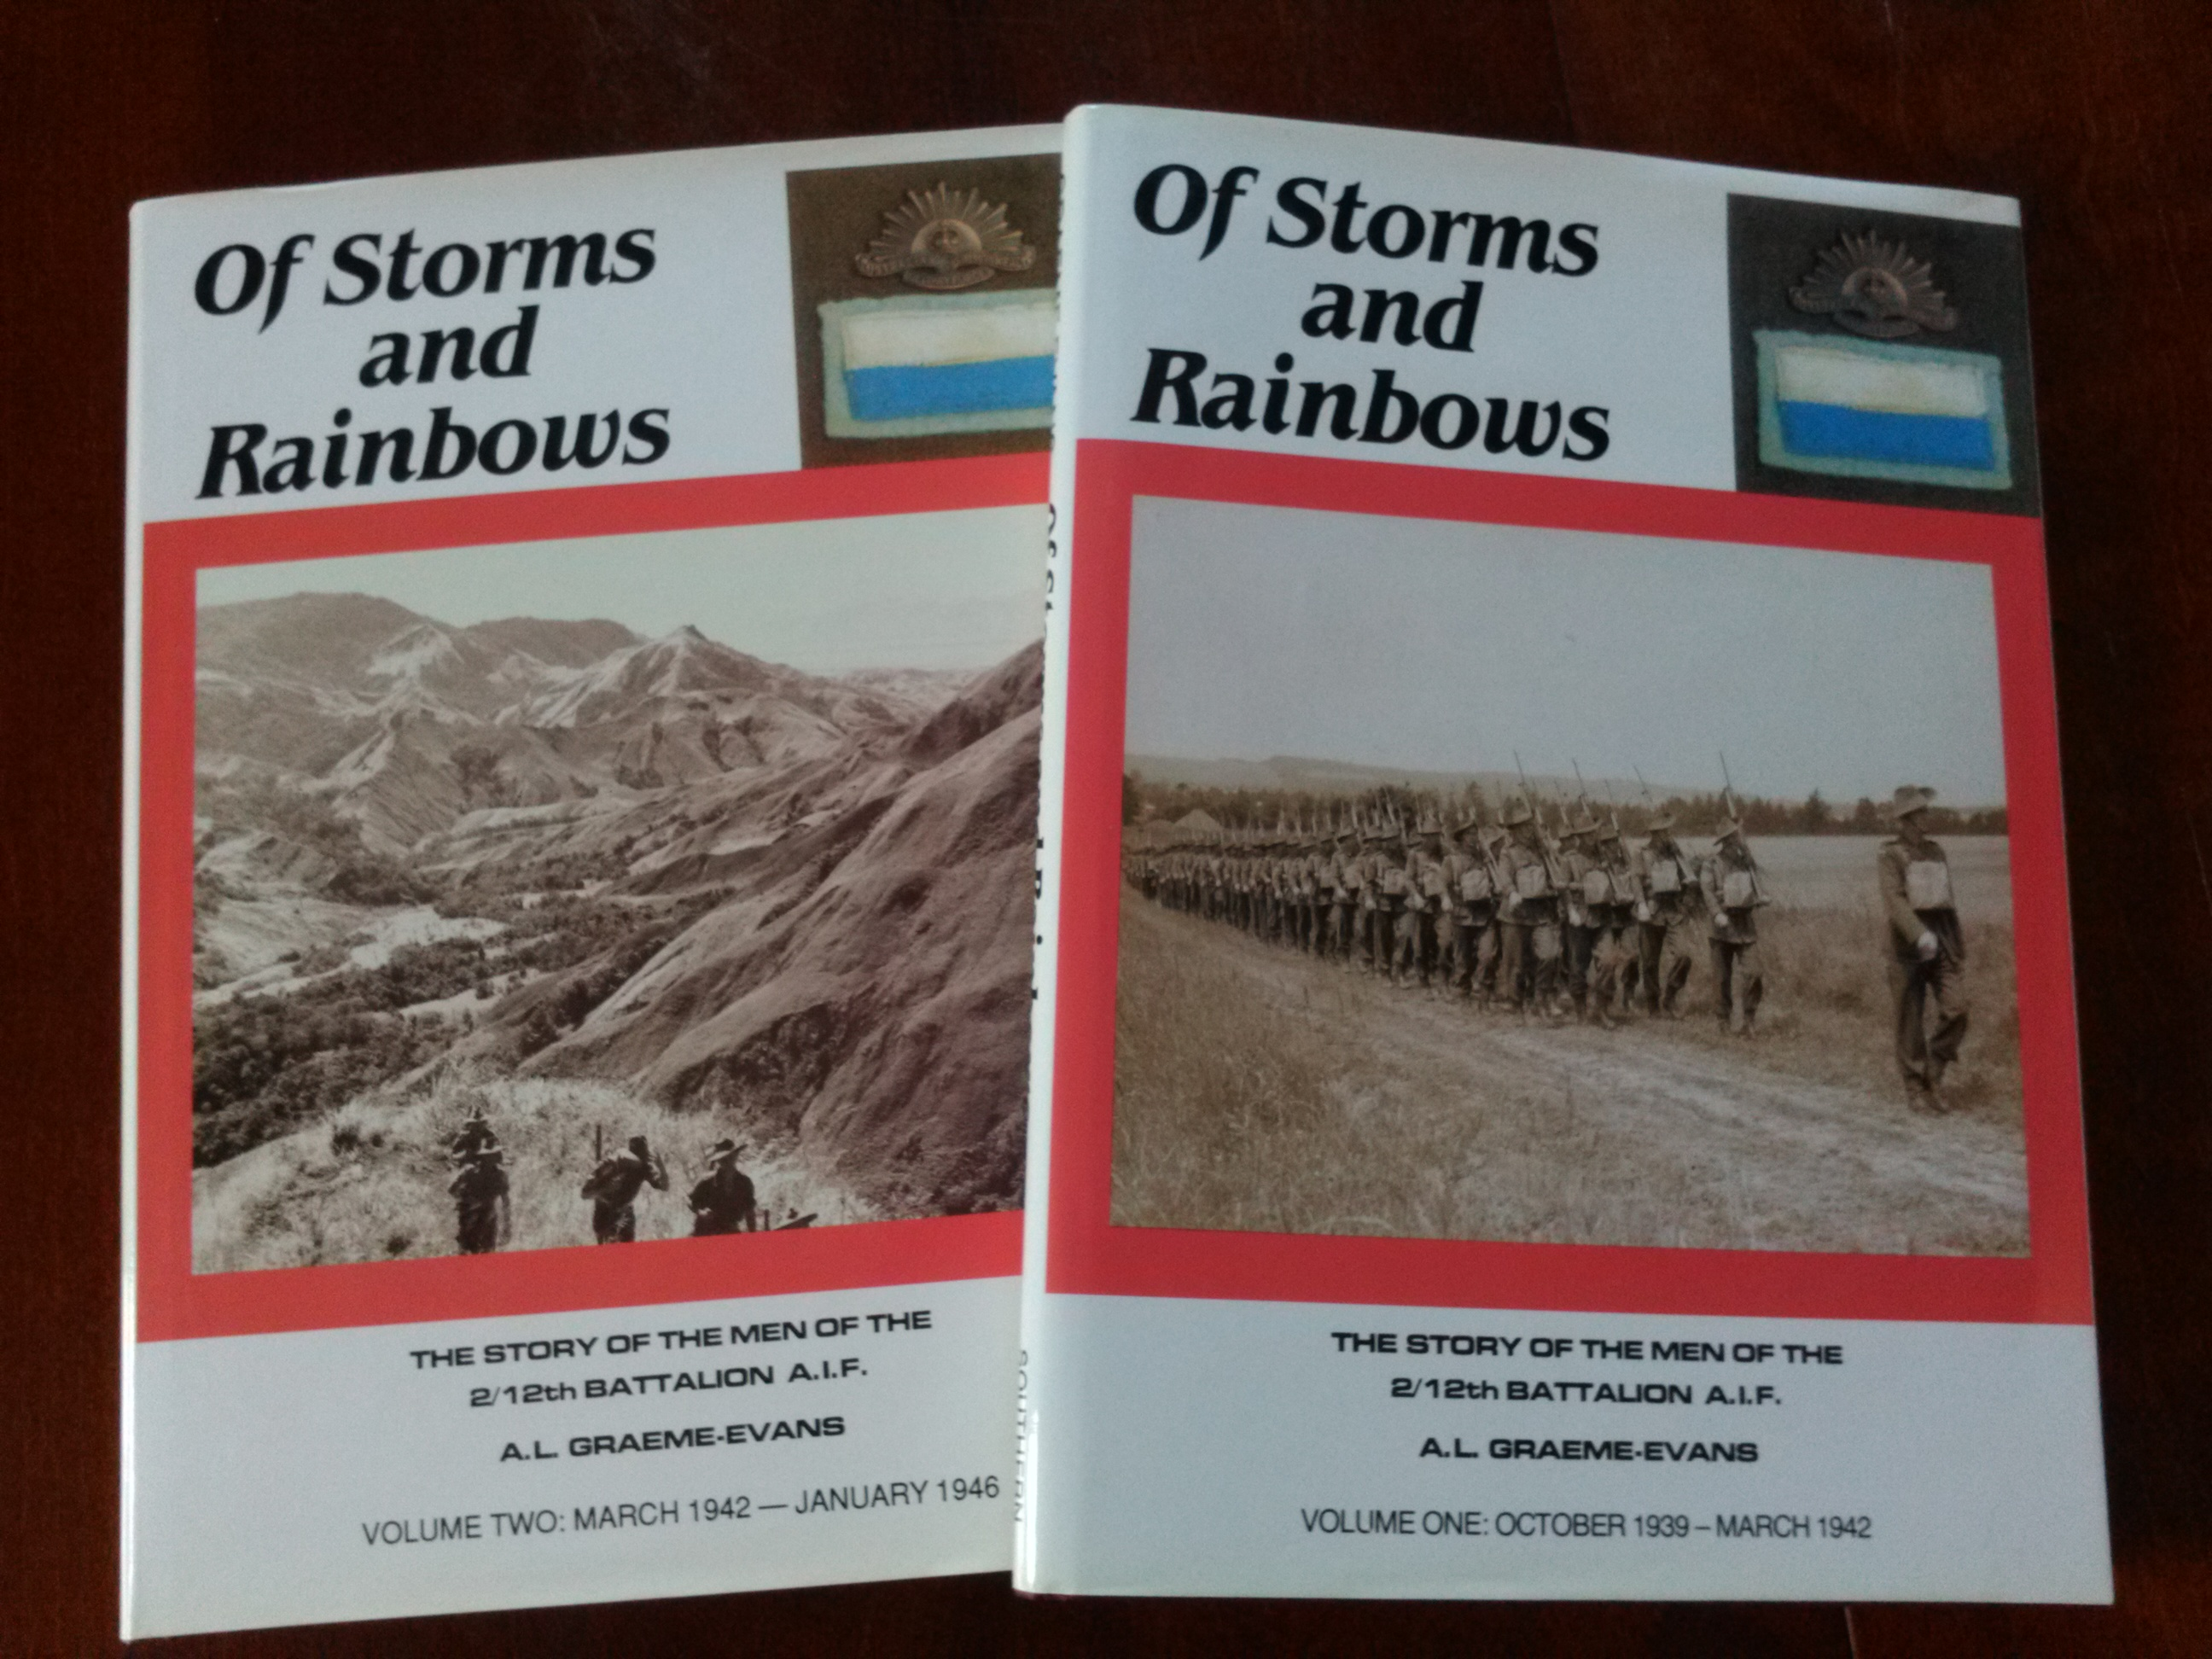 Of Storms and Rainbows - 2/12th Battalion AIF